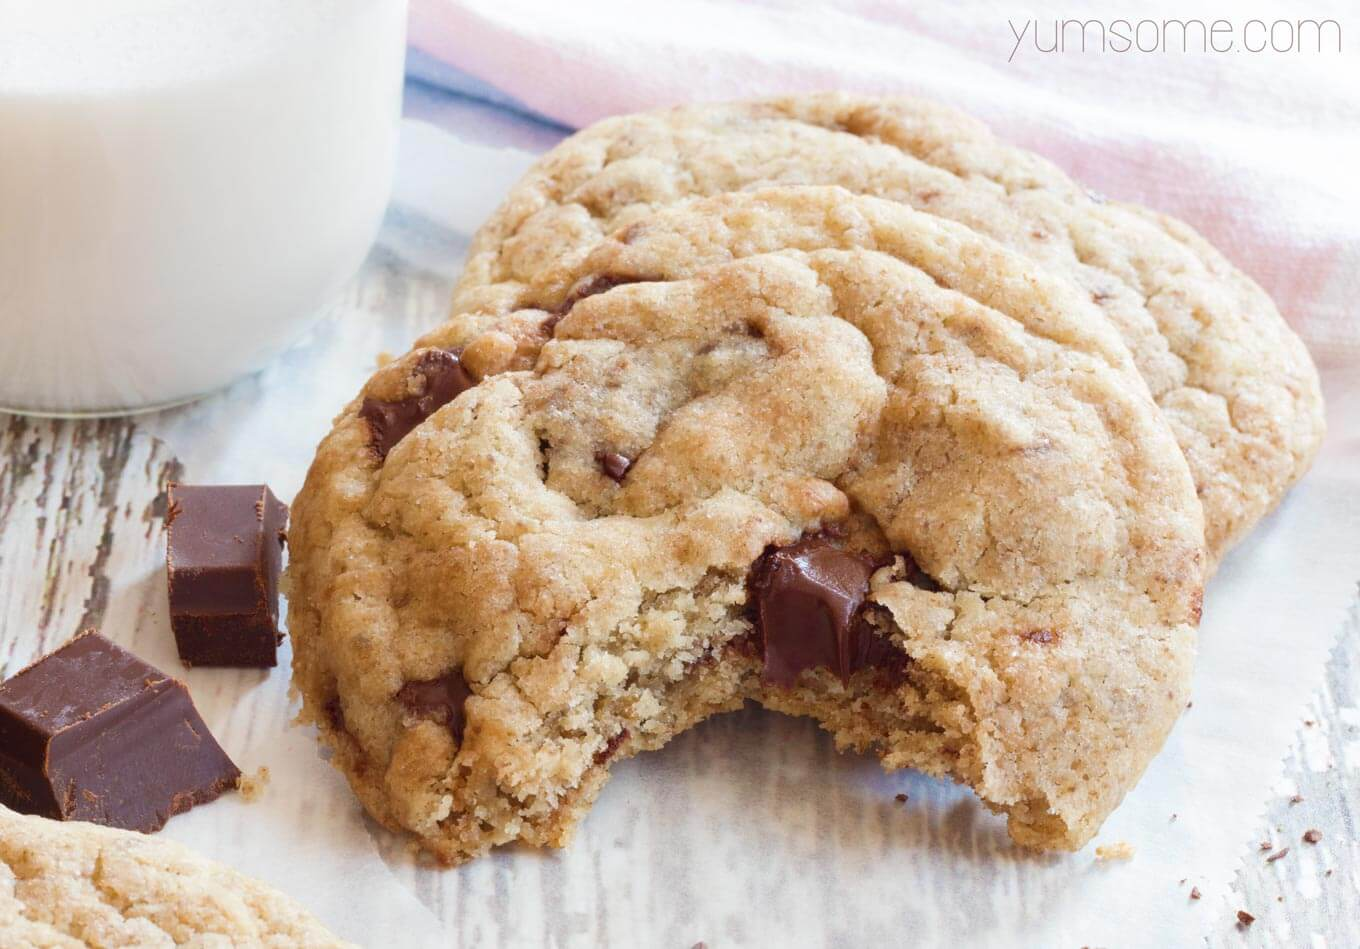 a bite from a vegan choc chunk cookie | yumsome.com